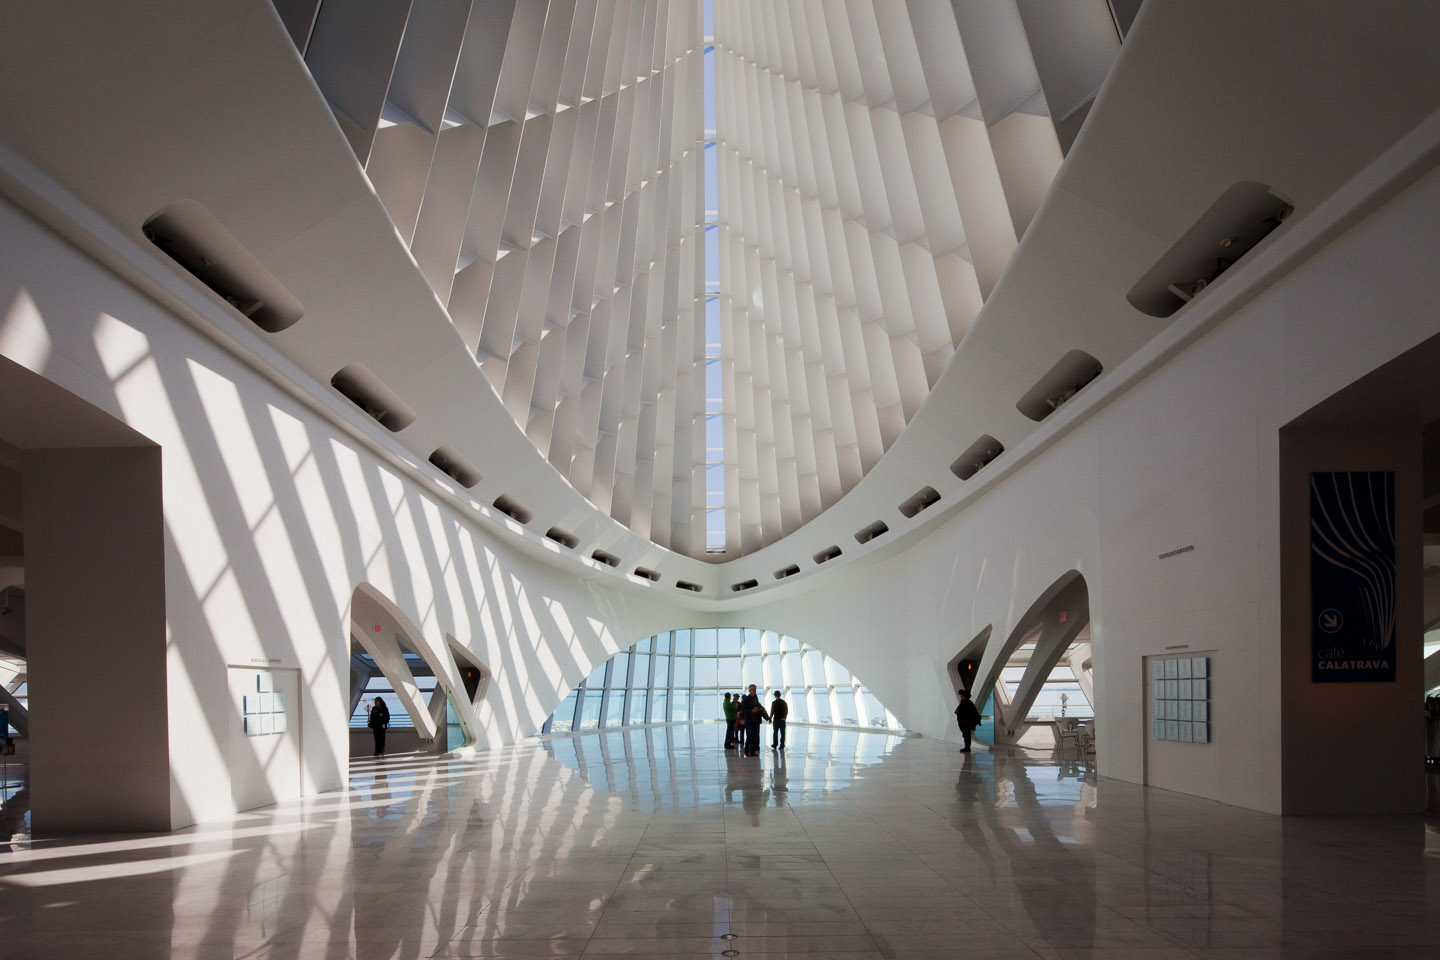 the main gallery space with vaulted glass ceiling at the Milwaukee Art Museum, designed by Santiago Calatrava, photographed by Jacob Rosenfeld